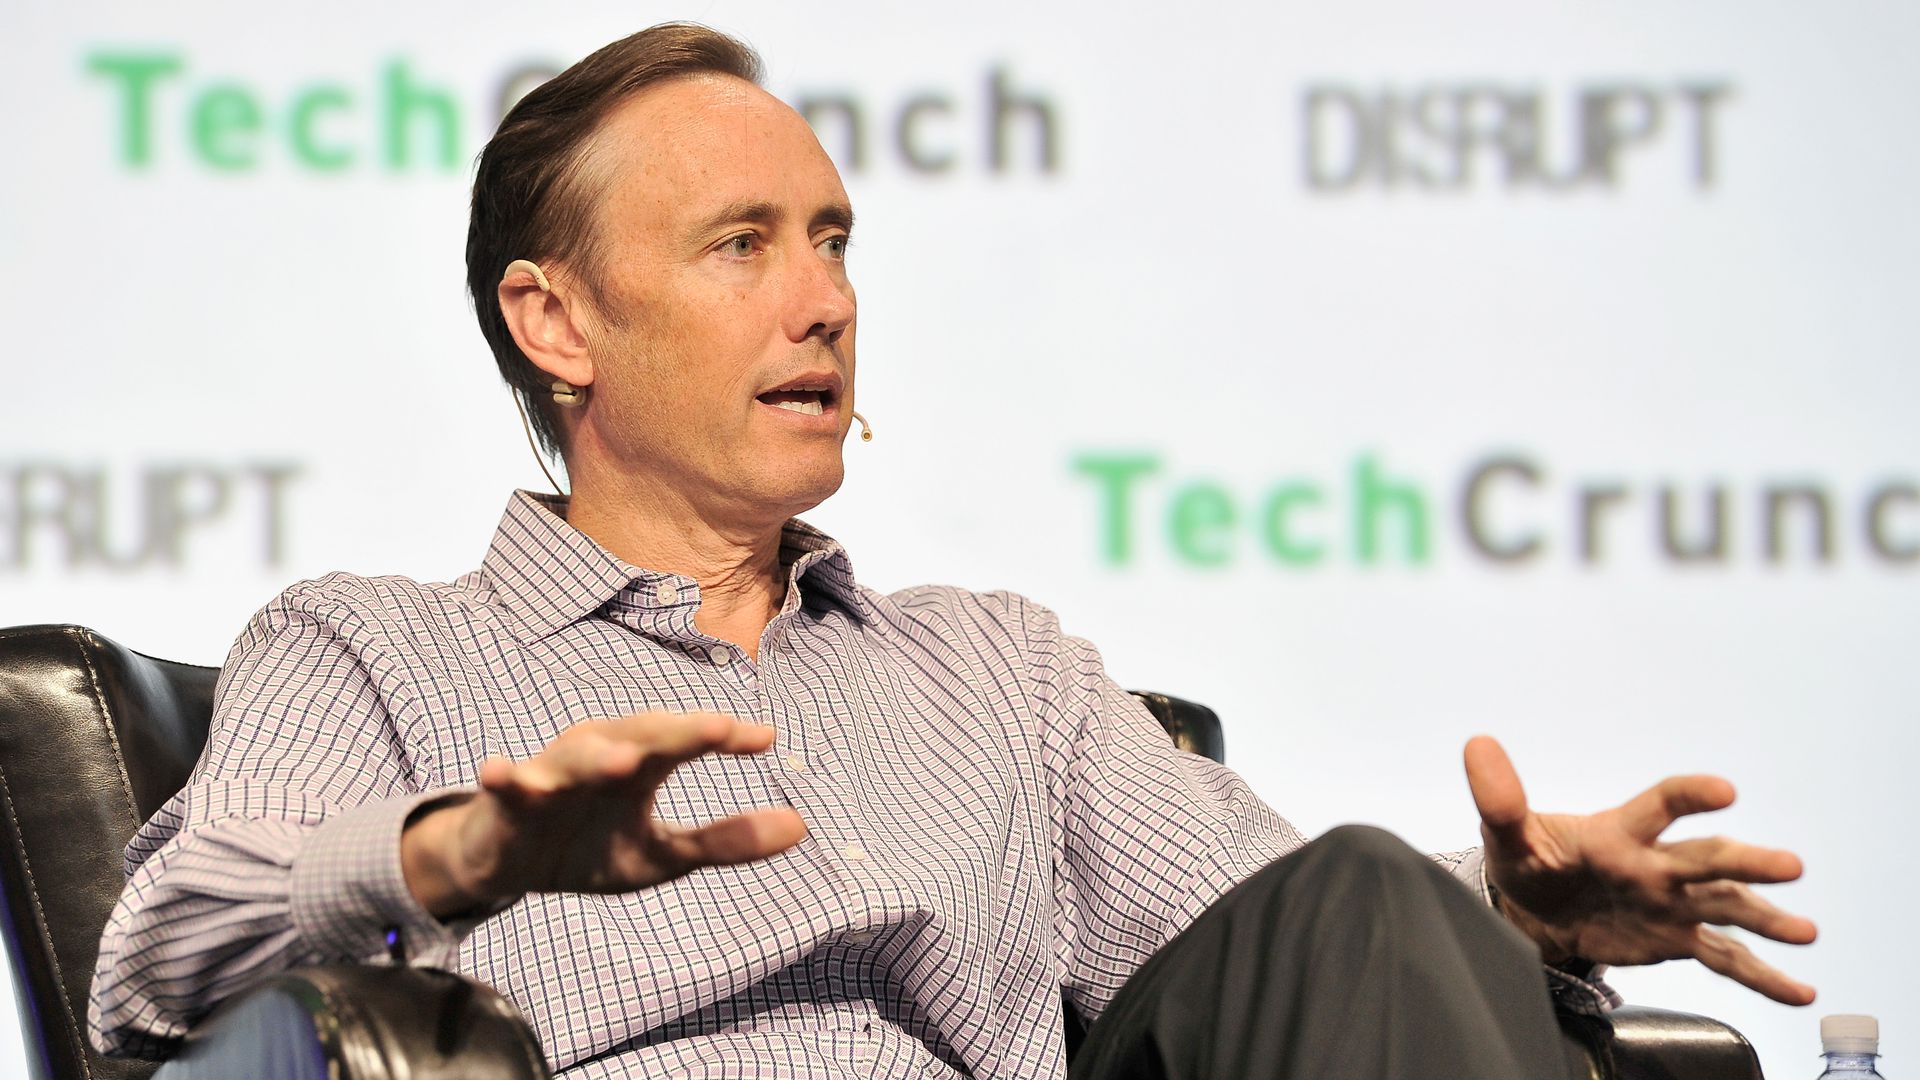 An image of Steve Jurvetson